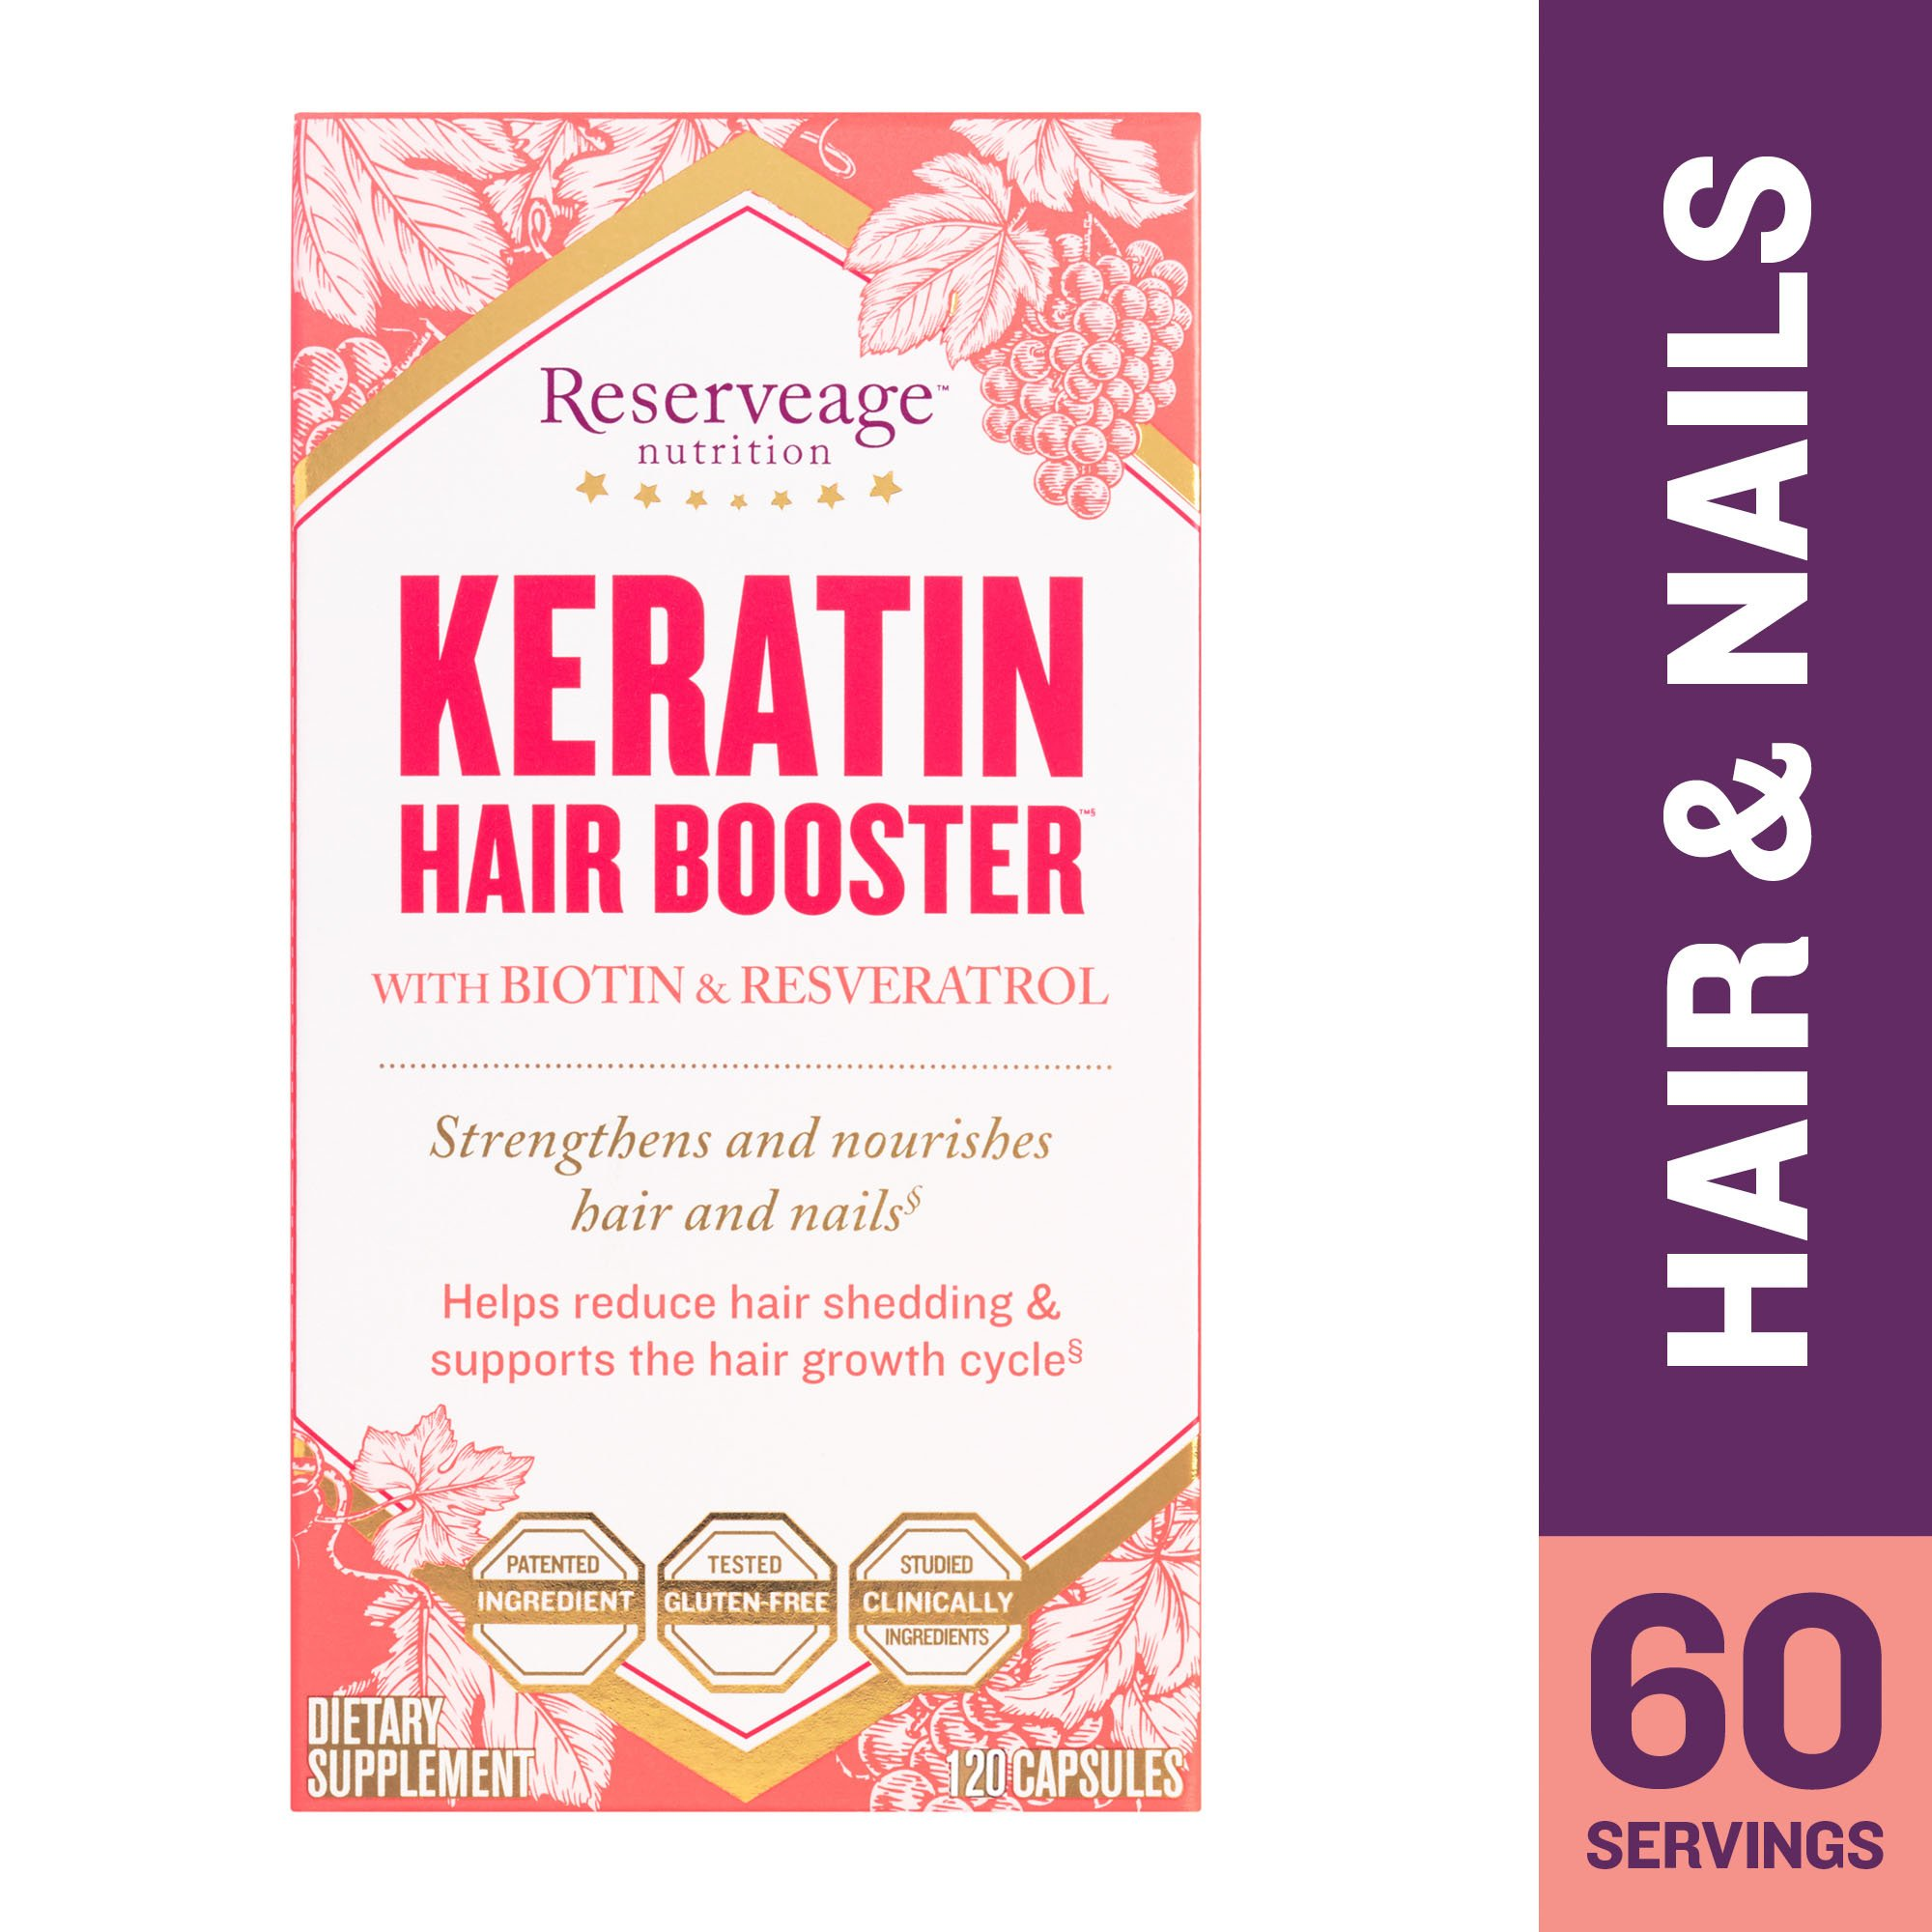 Reserveage - Keratin Hair Booster, Supports Growth of Strong, Shiny, Youthful Hair and Nails with Biotin and Pantothenic Acid, Gluten Free, 120 Capsules